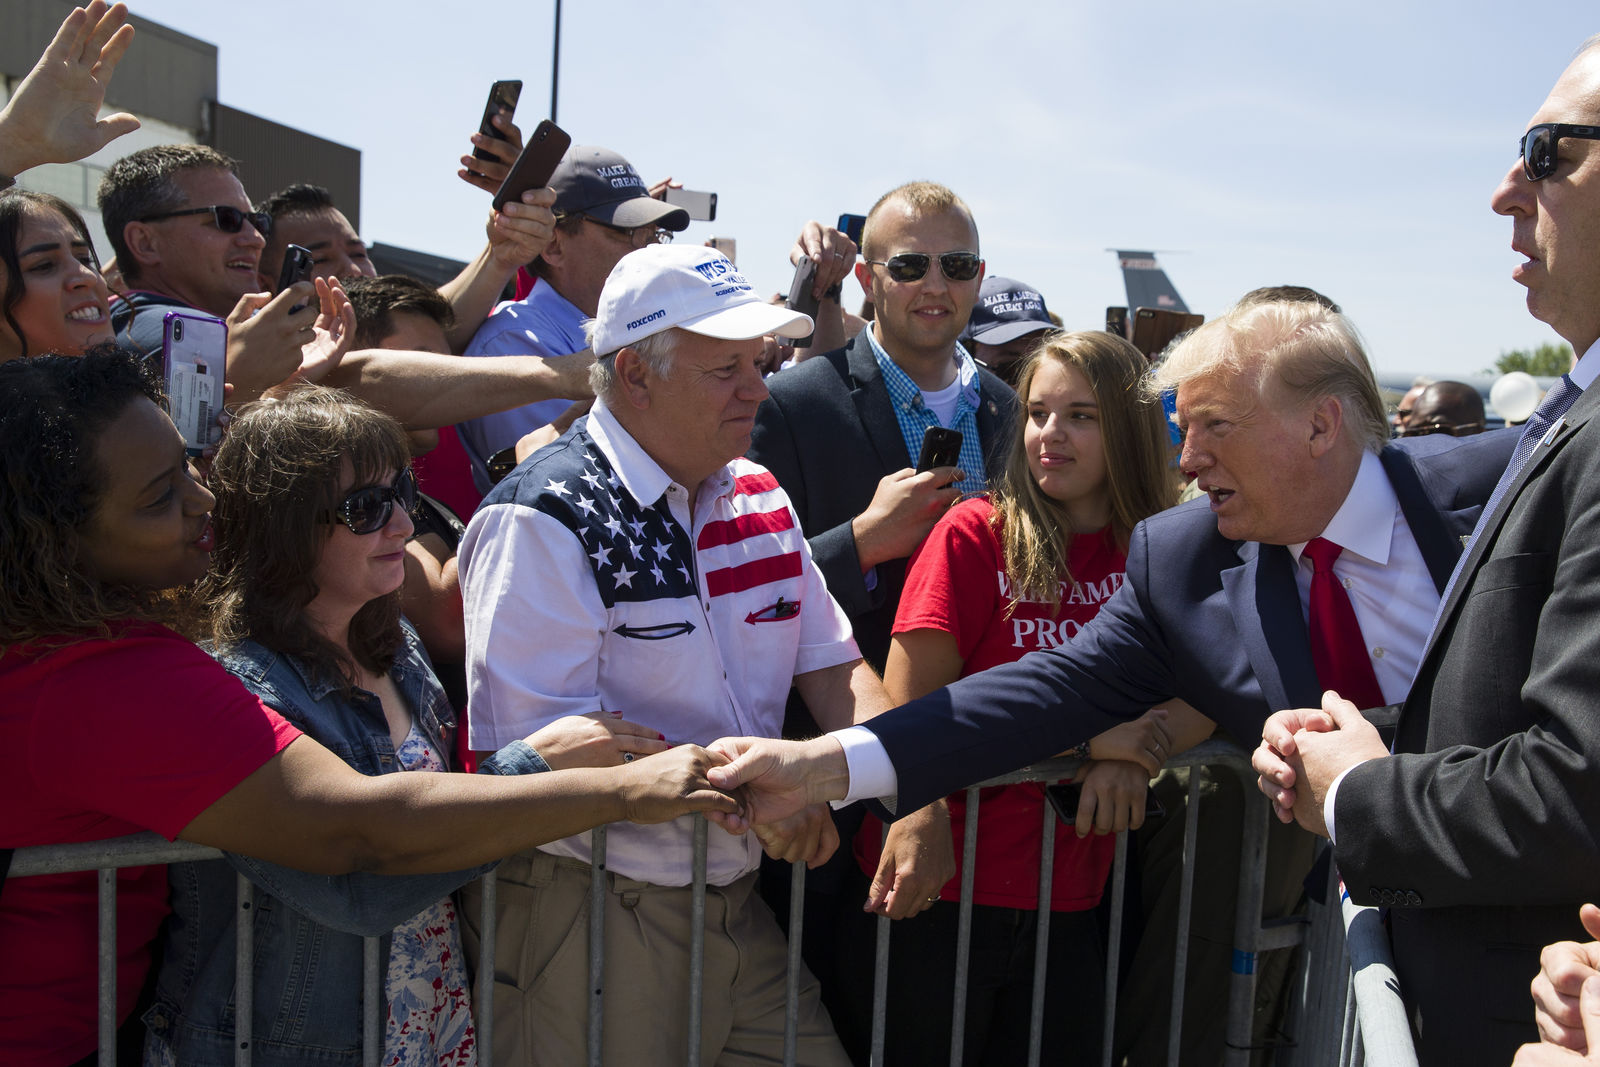 President Donald Trump greets supporters as he arrives at General Mitchell International Airport, Friday, July 12, 2019, in Milwaukee. (AP Photo/Alex Brandon)